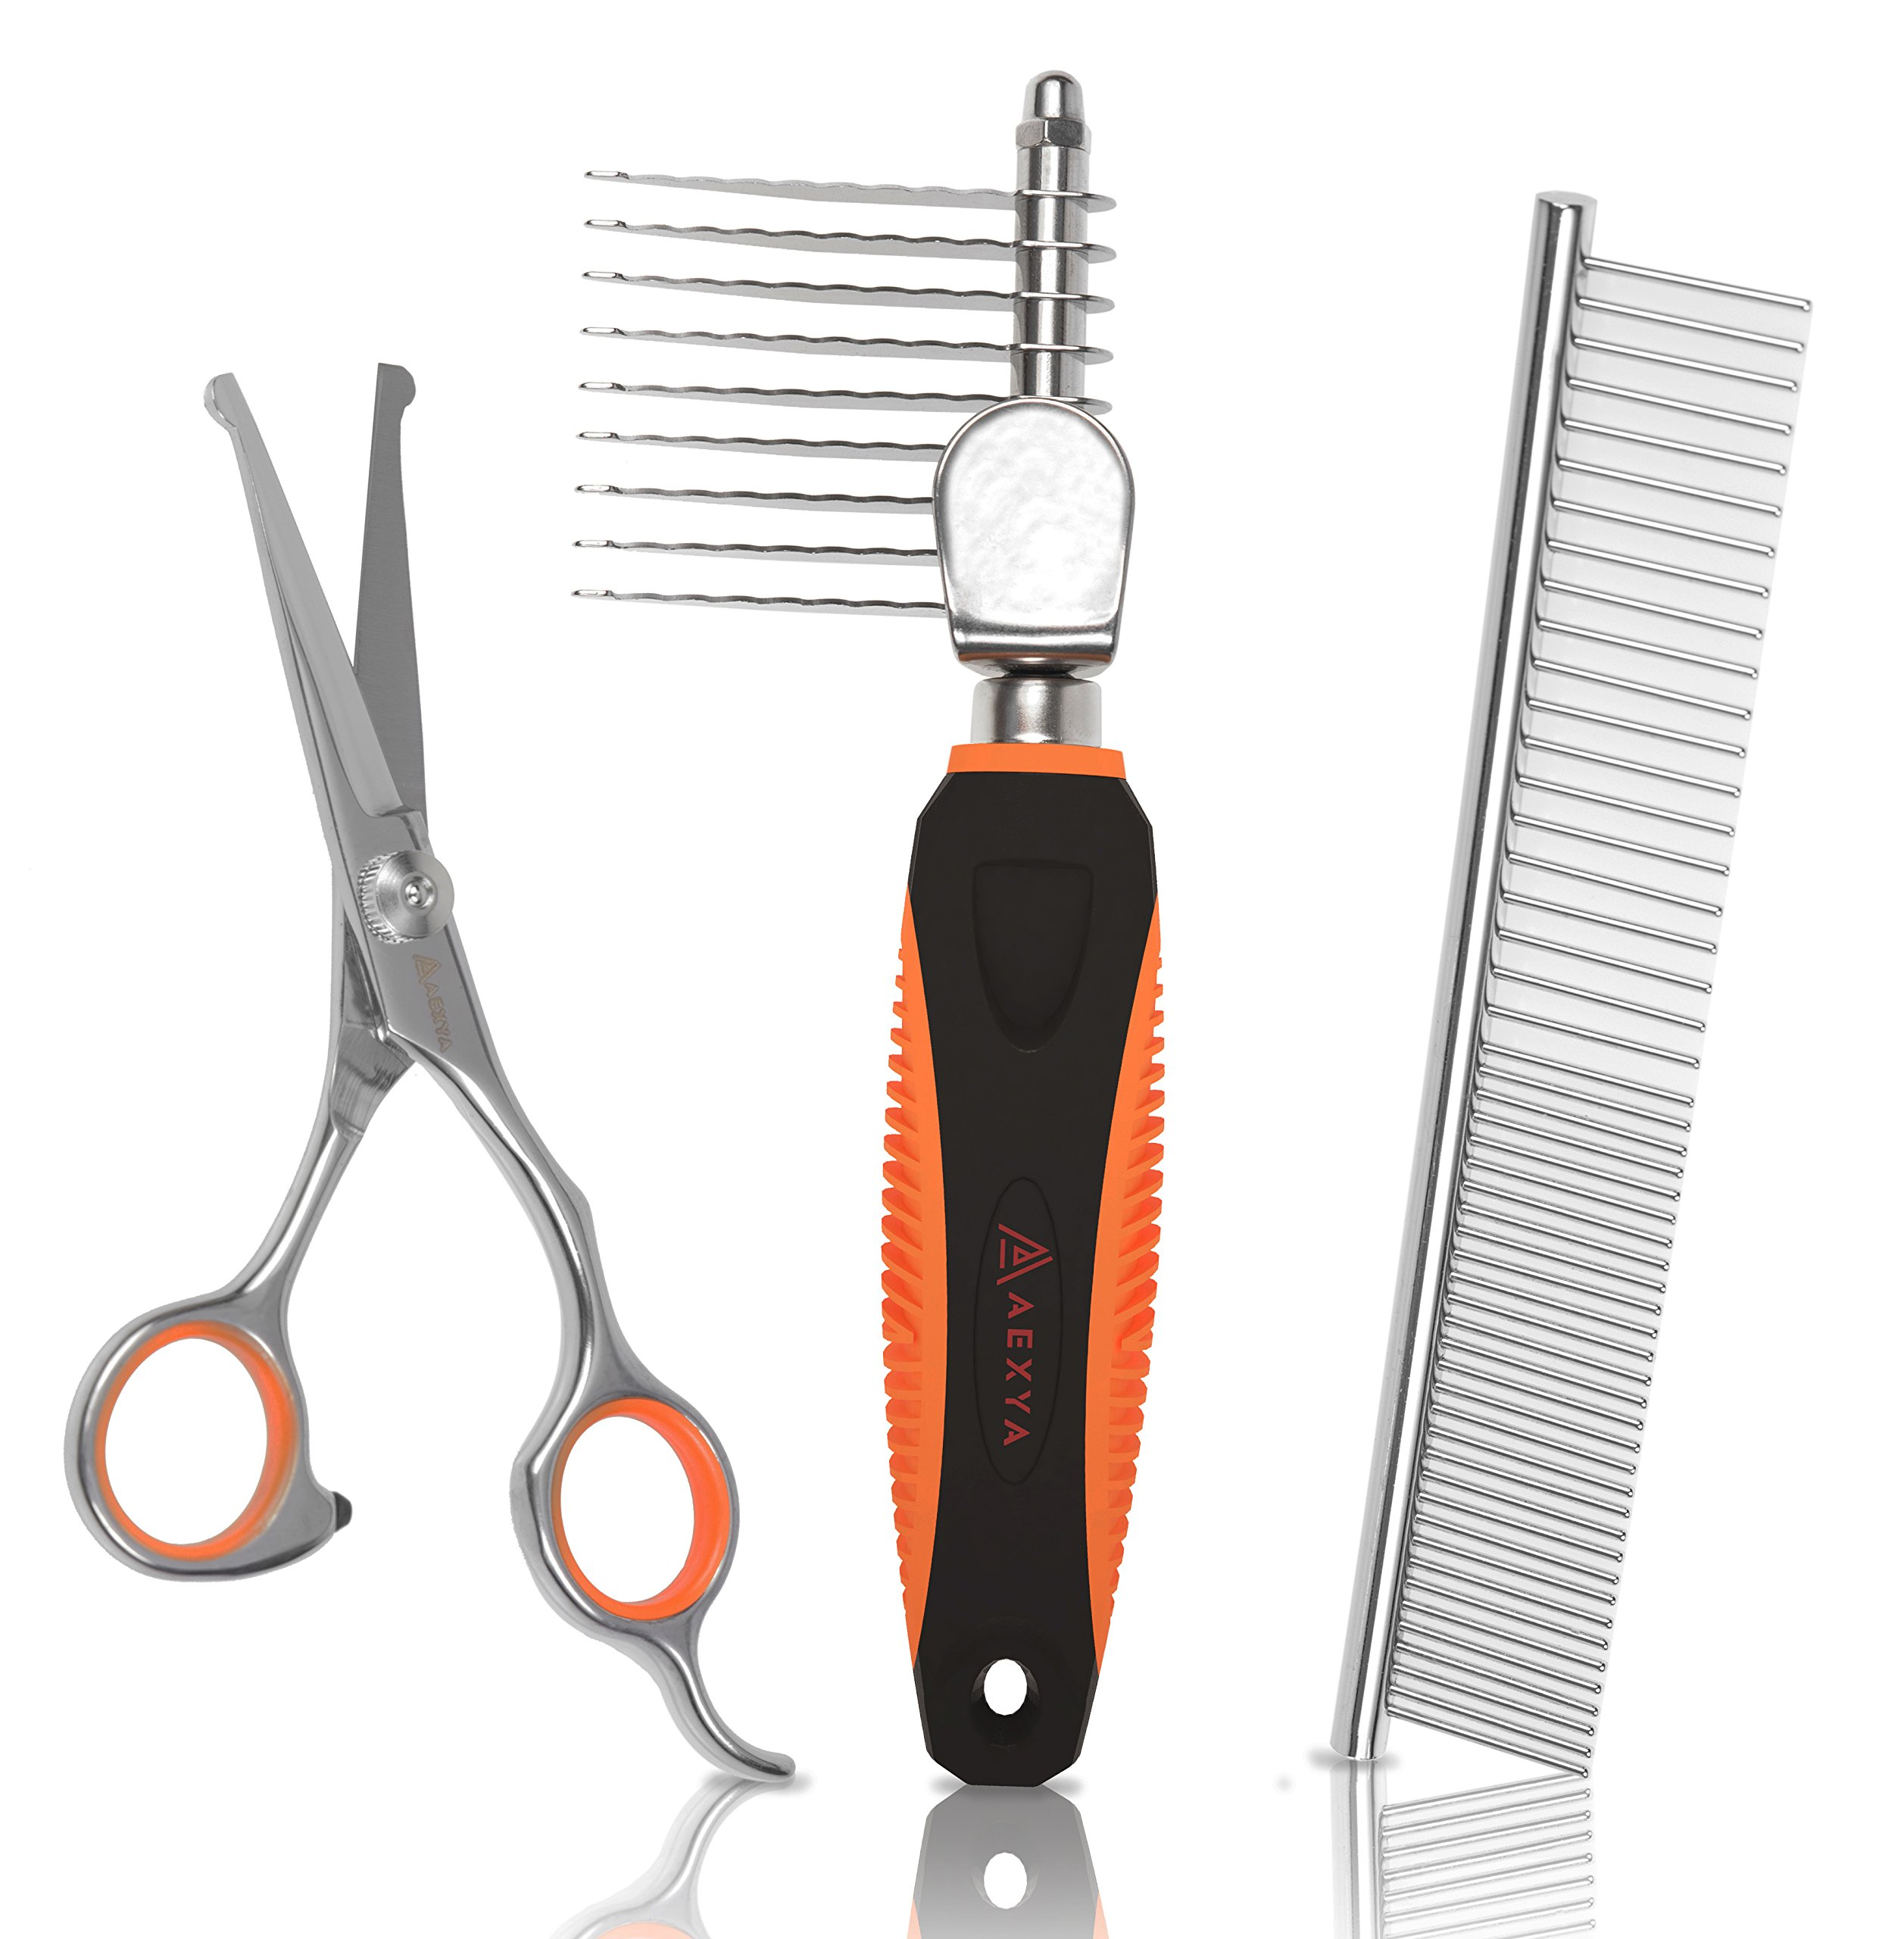 AEXYA Premium Dog Dematting Tools Comb Scissors Set - Undercoat Tangles Deshedding Tool for Cats and Dogs – Safe and Easy Mats Remover Rake